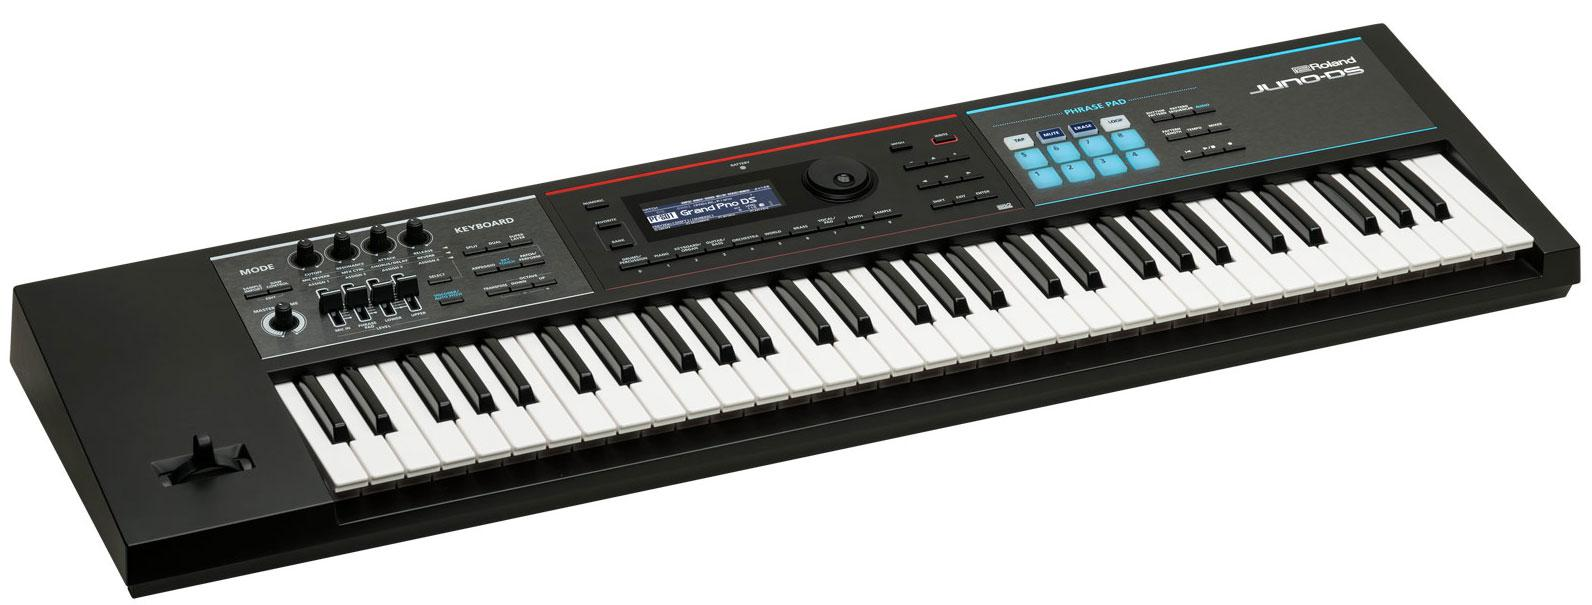 Synthesizer - Roland Juno DS 61 Synthesizer - Onlineshop Musikhaus Kirstein